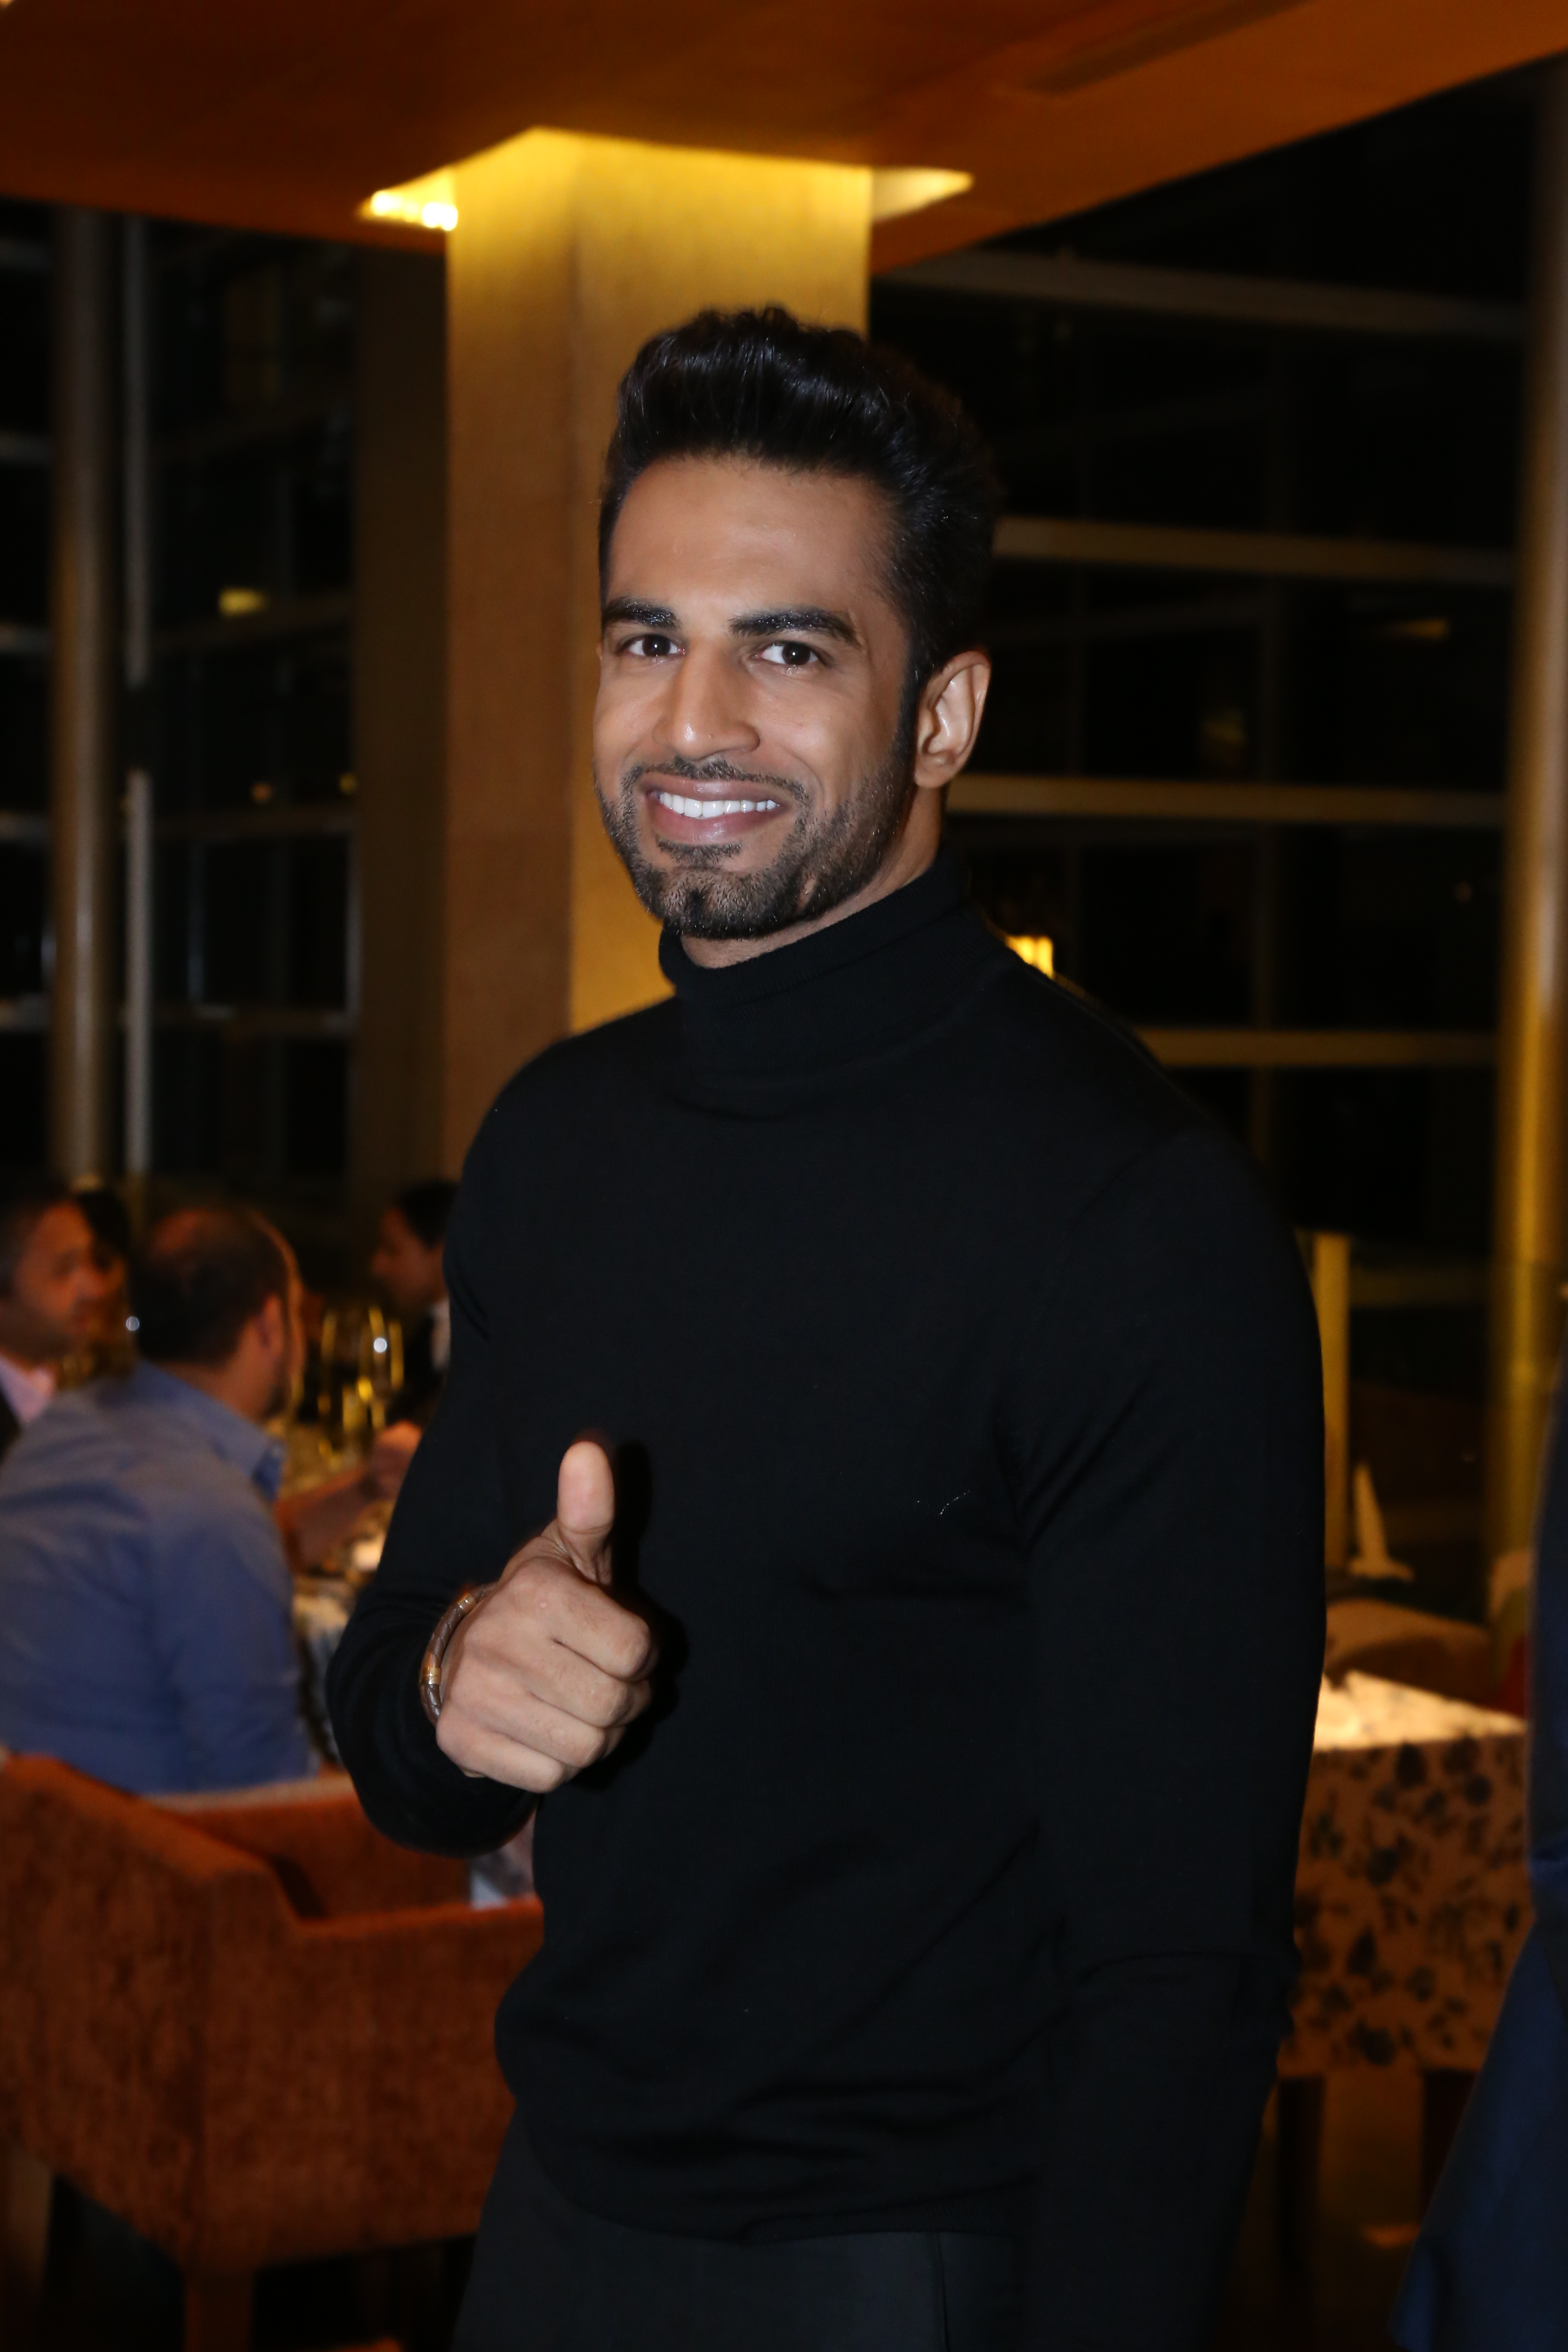 Actor Upen patel spotted at the dinner of A Taste of Heaven at Four seasons